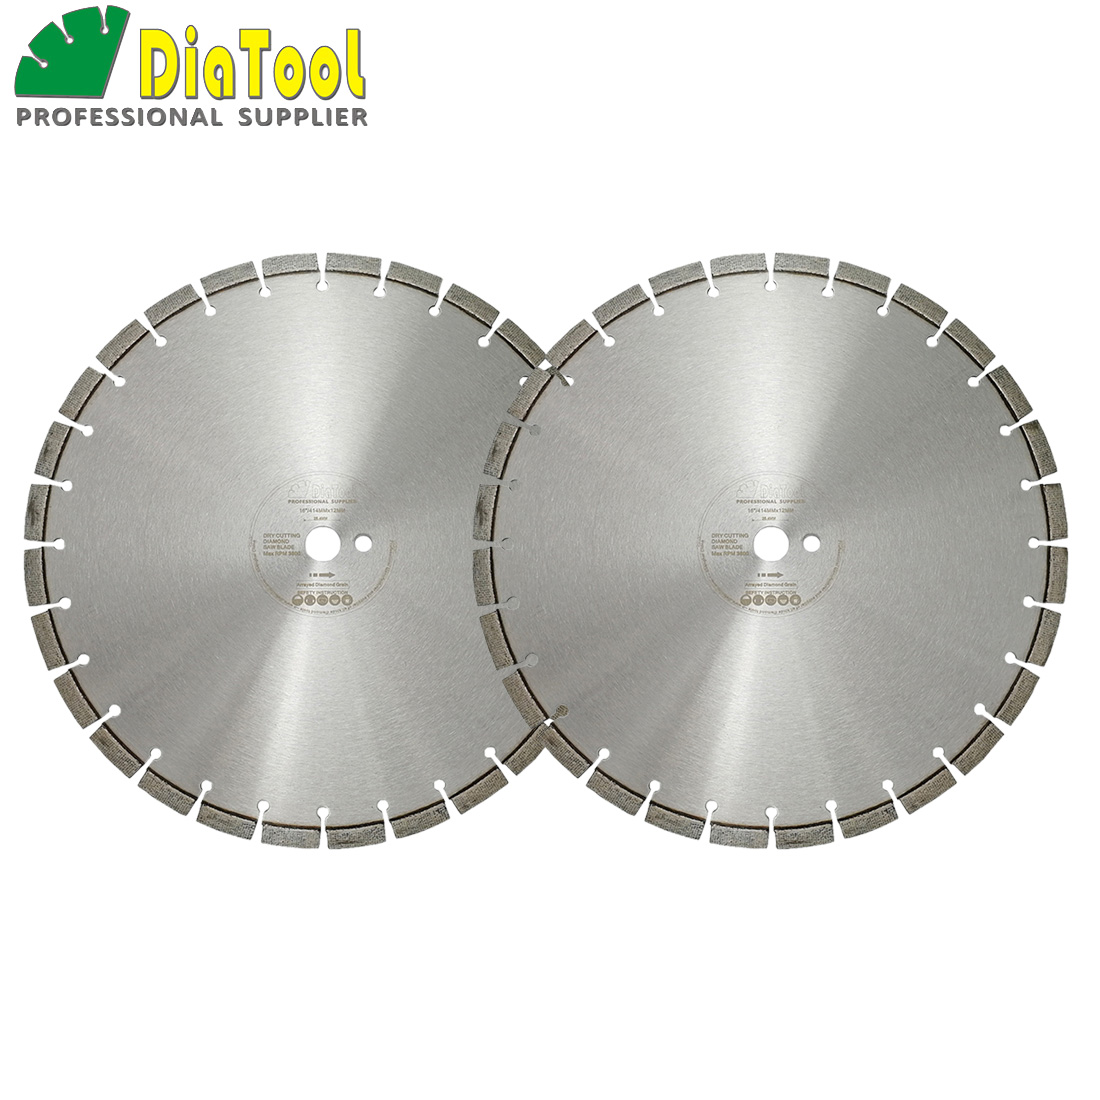 DIATOOL 2pcs 16 inch Laser Welded Arrayed Diamond Blade Cutting Disc Saw blades Dia 414mm Reinforced Concrete Diamond Wheel DiskDIATOOL 2pcs 16 inch Laser Welded Arrayed Diamond Blade Cutting Disc Saw blades Dia 414mm Reinforced Concrete Diamond Wheel Disk